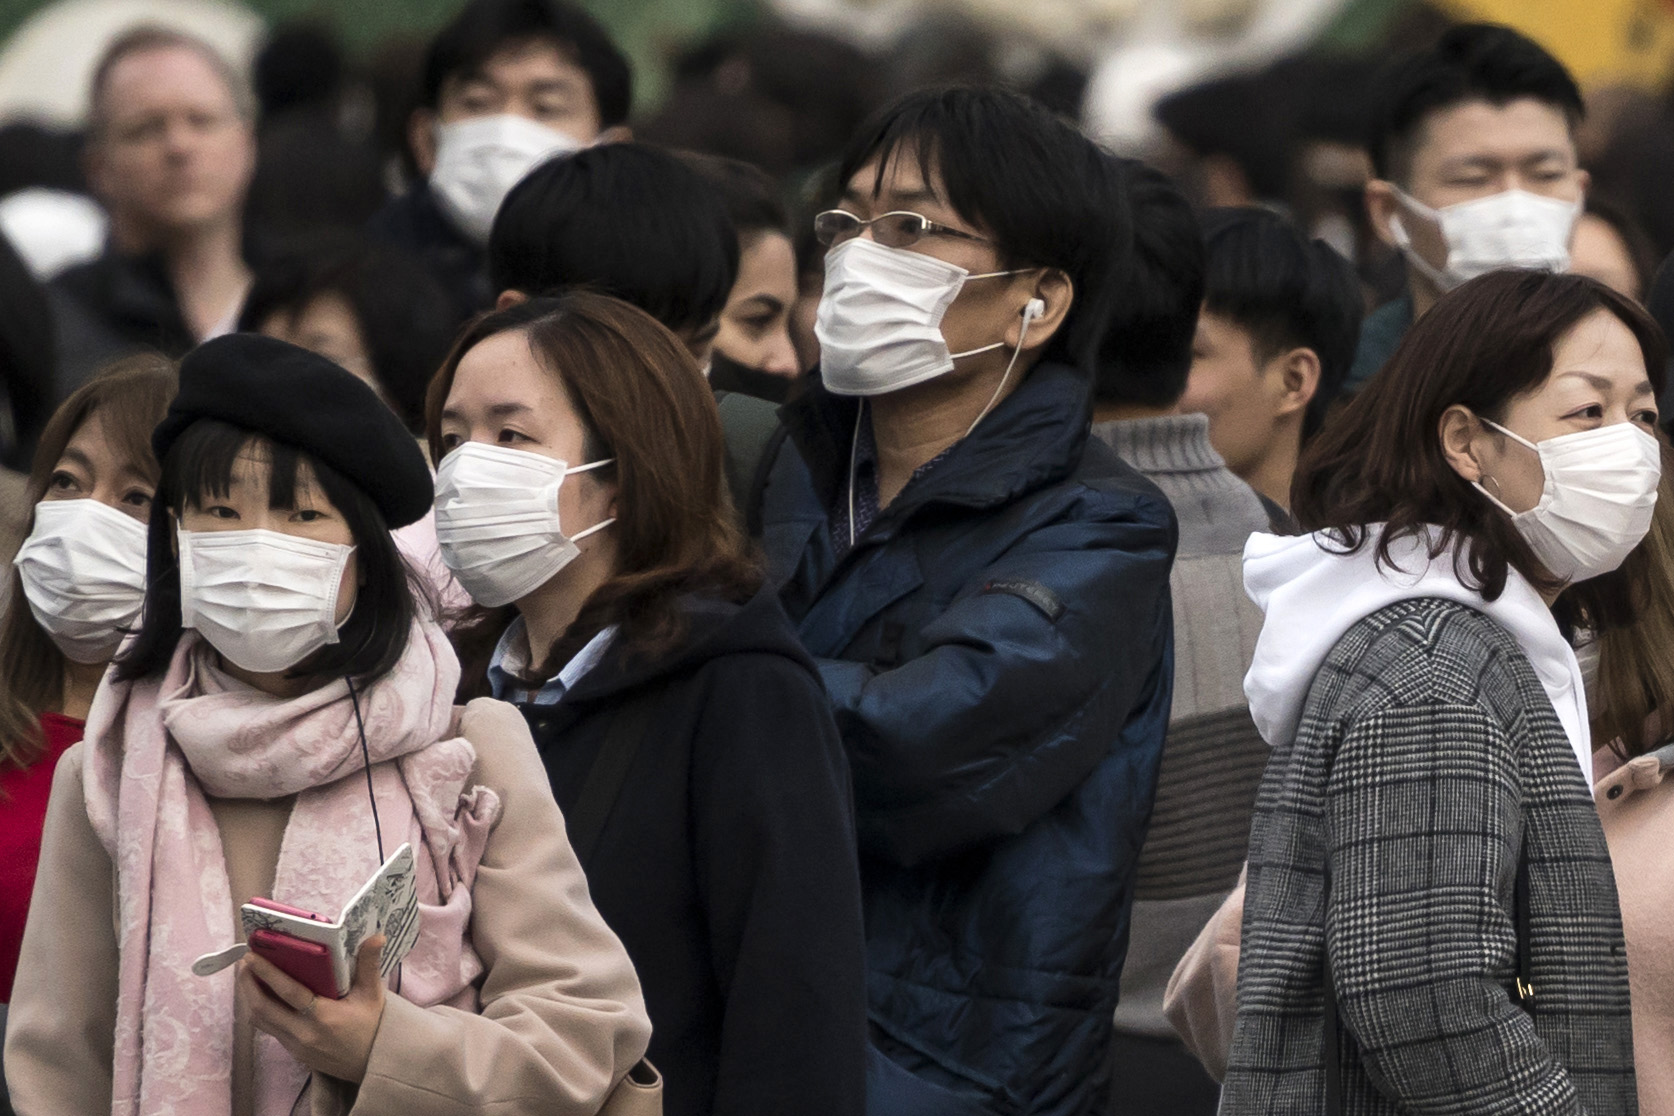 People wearing masks wait to cross a road in the Shibuya district on February 02, 2020 in Tokyo, Japan. Japan reported 20 cases of Wuhan coronavirus infections as the number of those who have died from the virus, known as 2019-nCoV, in China climbed to over 300 and cases have been reported in other countries including the United States, Canada, Australia, Japan, South Korea, India, the United Kingdom, Germany, France, and several others. (Photo by Tomohiro Ohsumi/Getty Images)